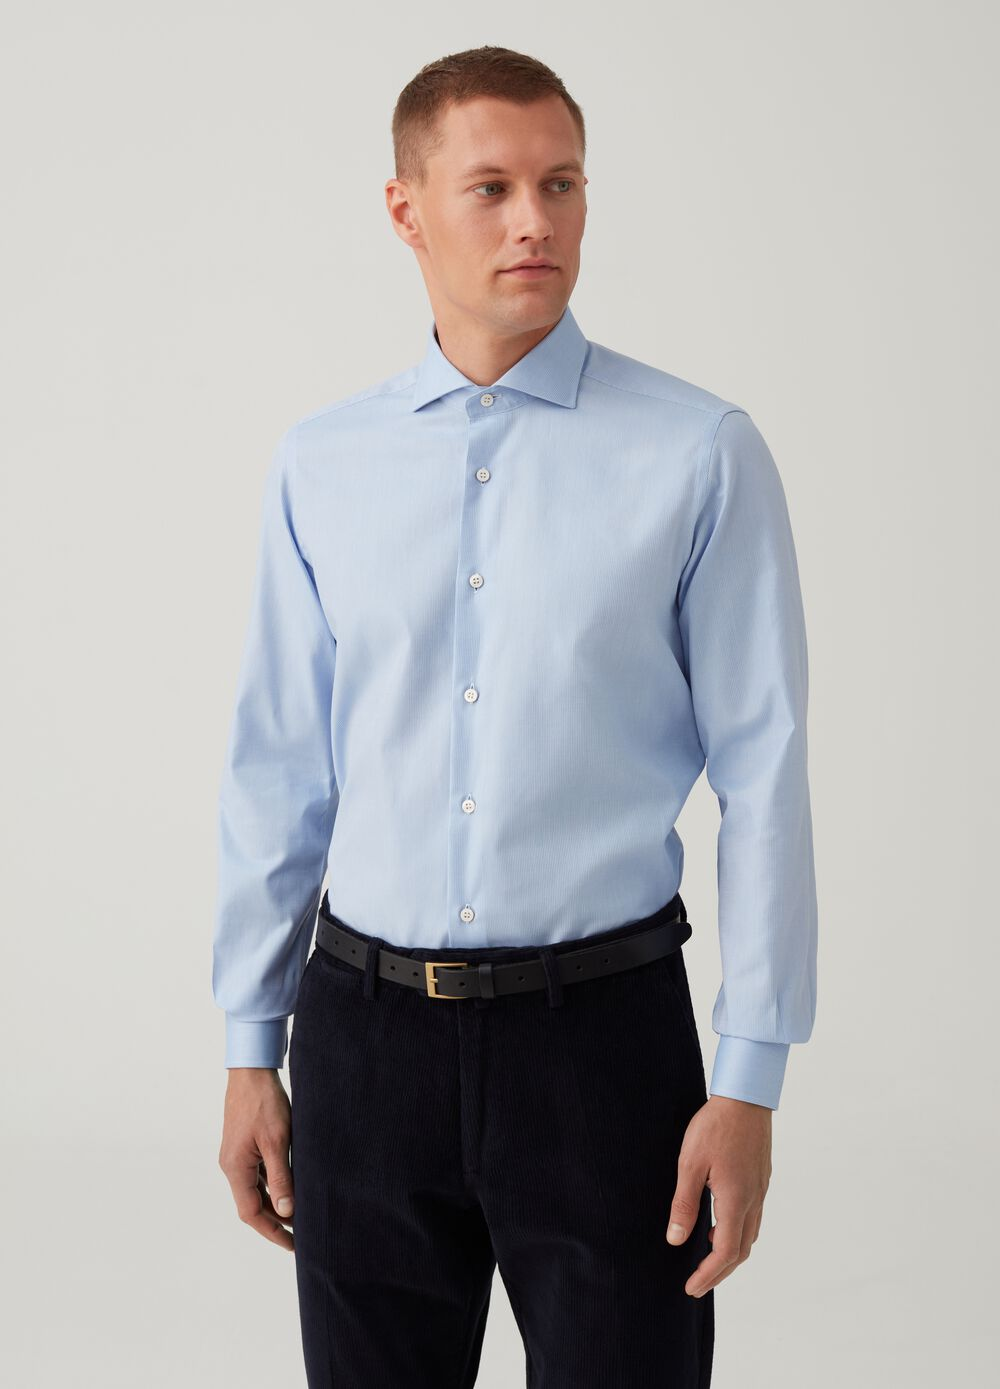 Rumford cotton shirt with micro stripes